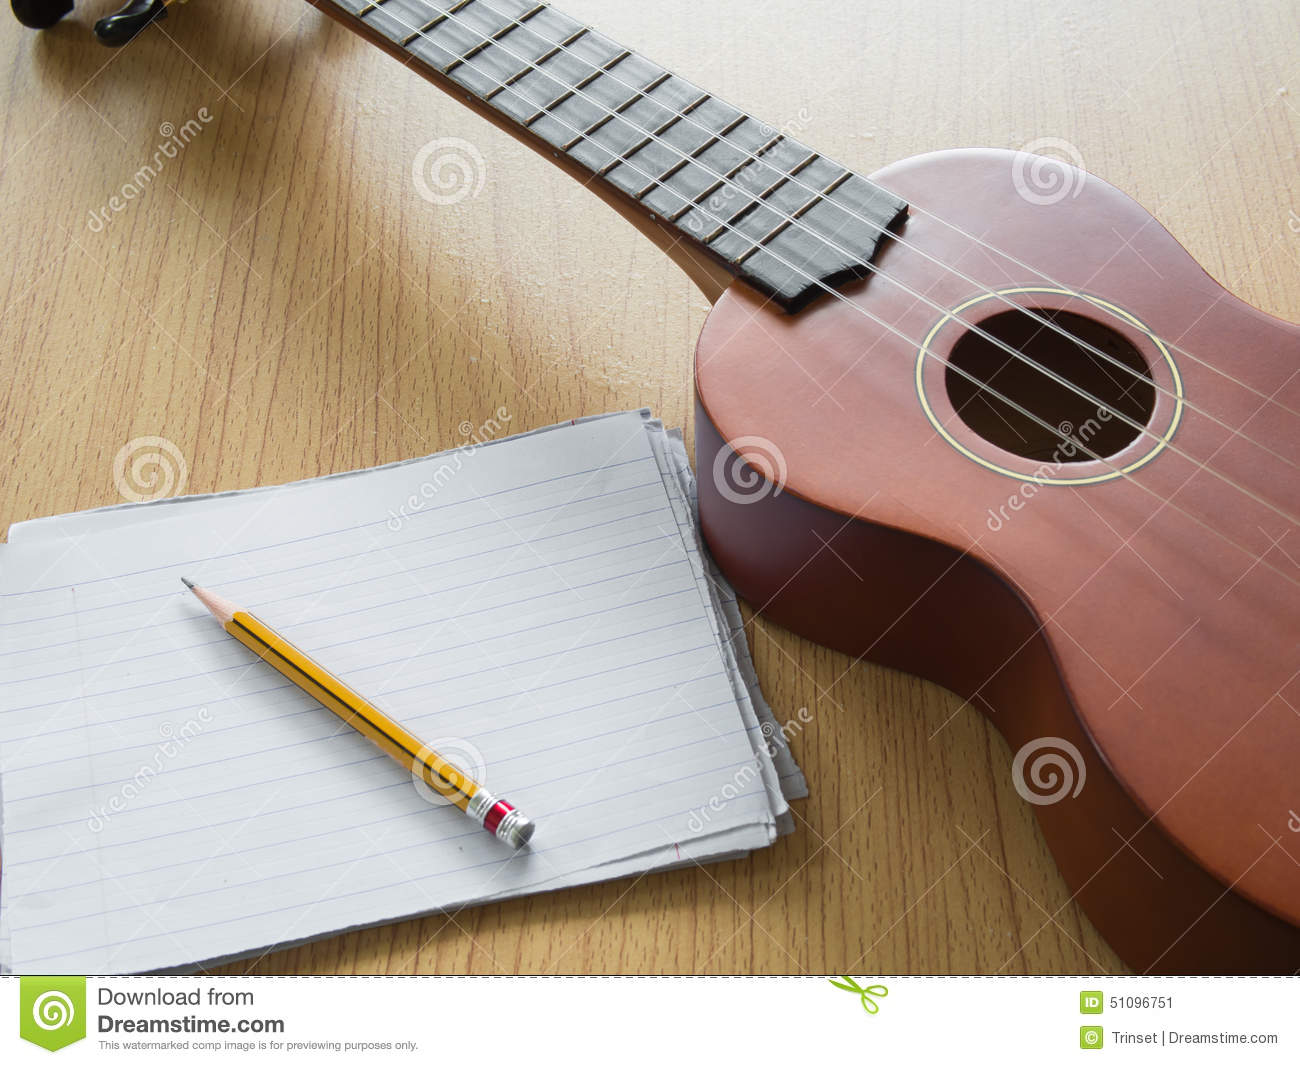 How to write an essay about my best friend in french ukulele